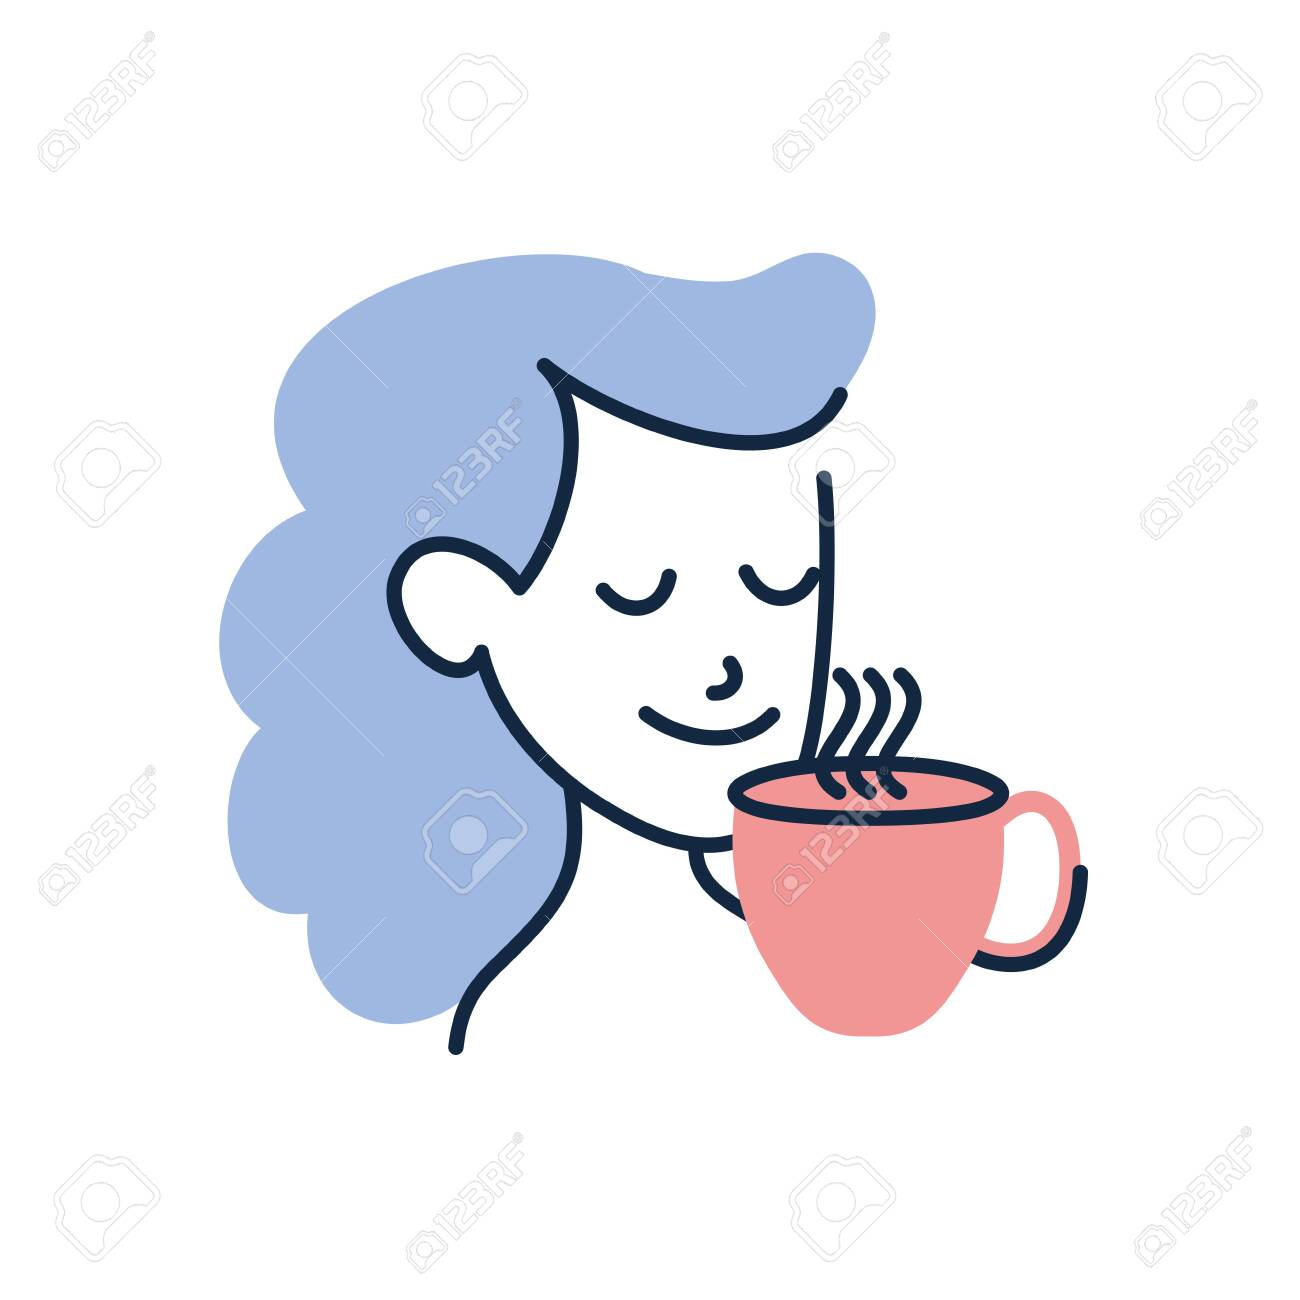 woman cartoon with tea cup doodle line fill style icon design royalty free cliparts vectors and stock illustration image 140970865 woman cartoon with tea cup doodle line fill style icon design